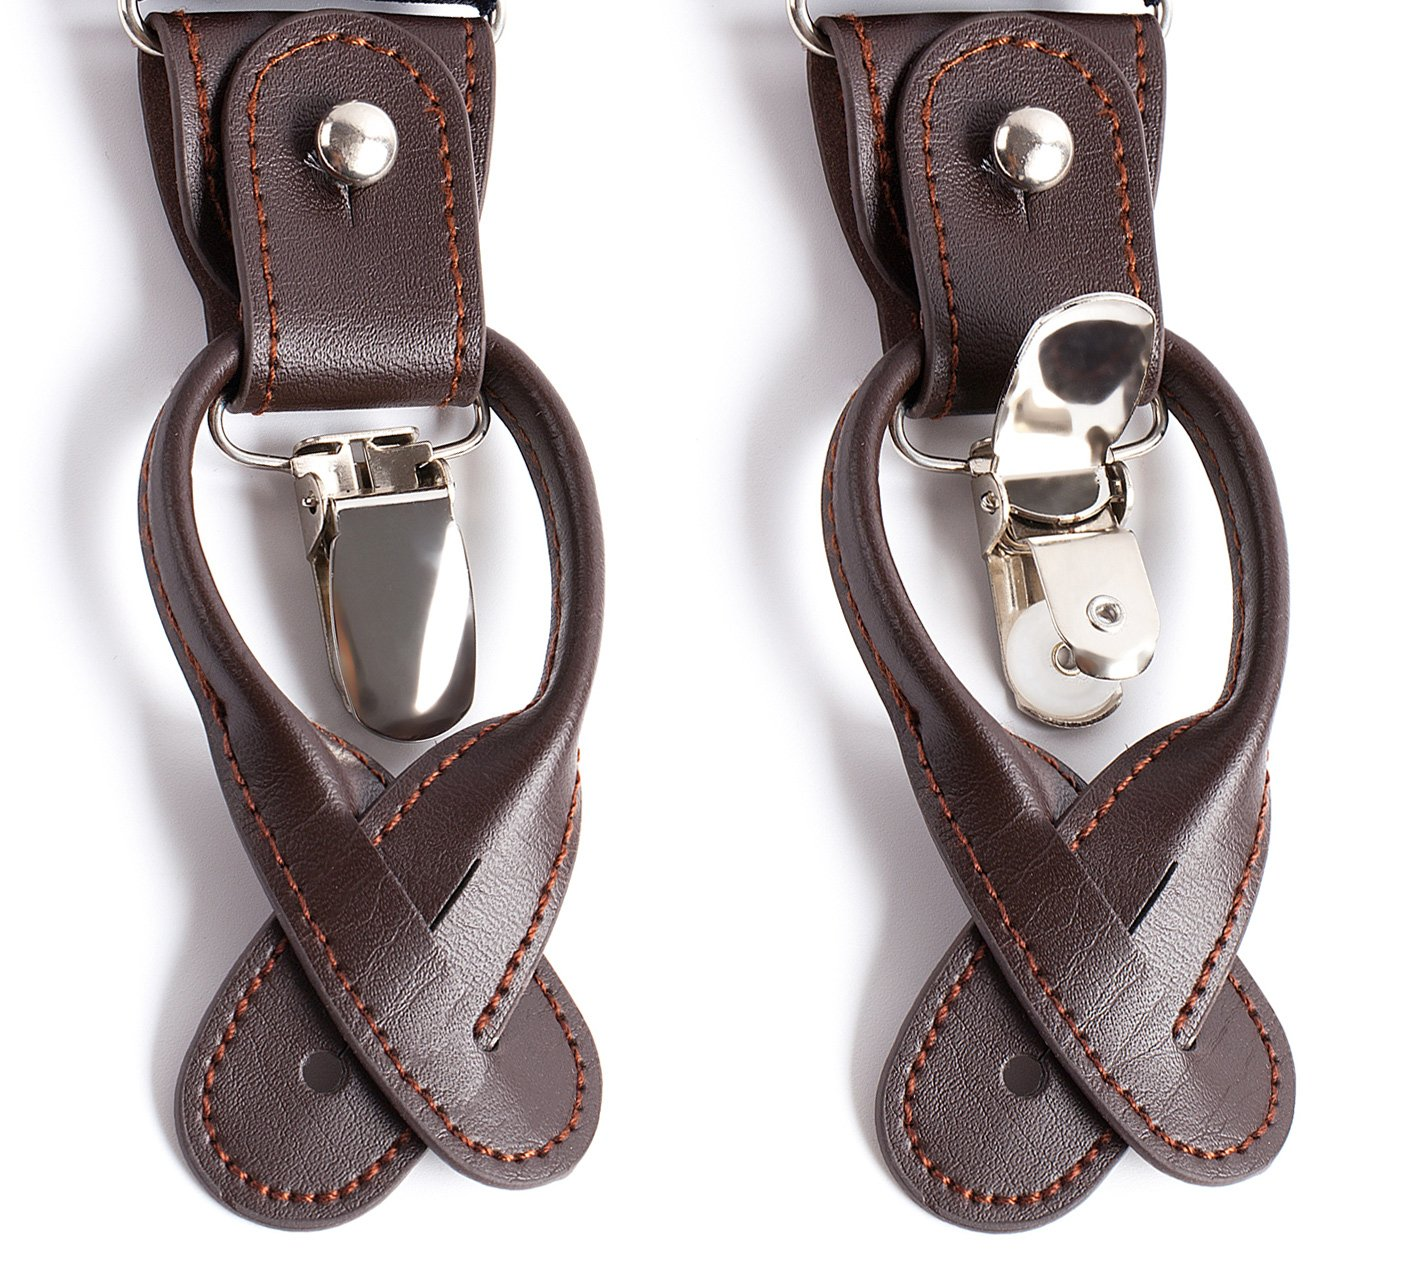 Jacob Alexander Mens Small Dots Y-Back Suspenders Braces Convertible Leather Ends Clips Red White